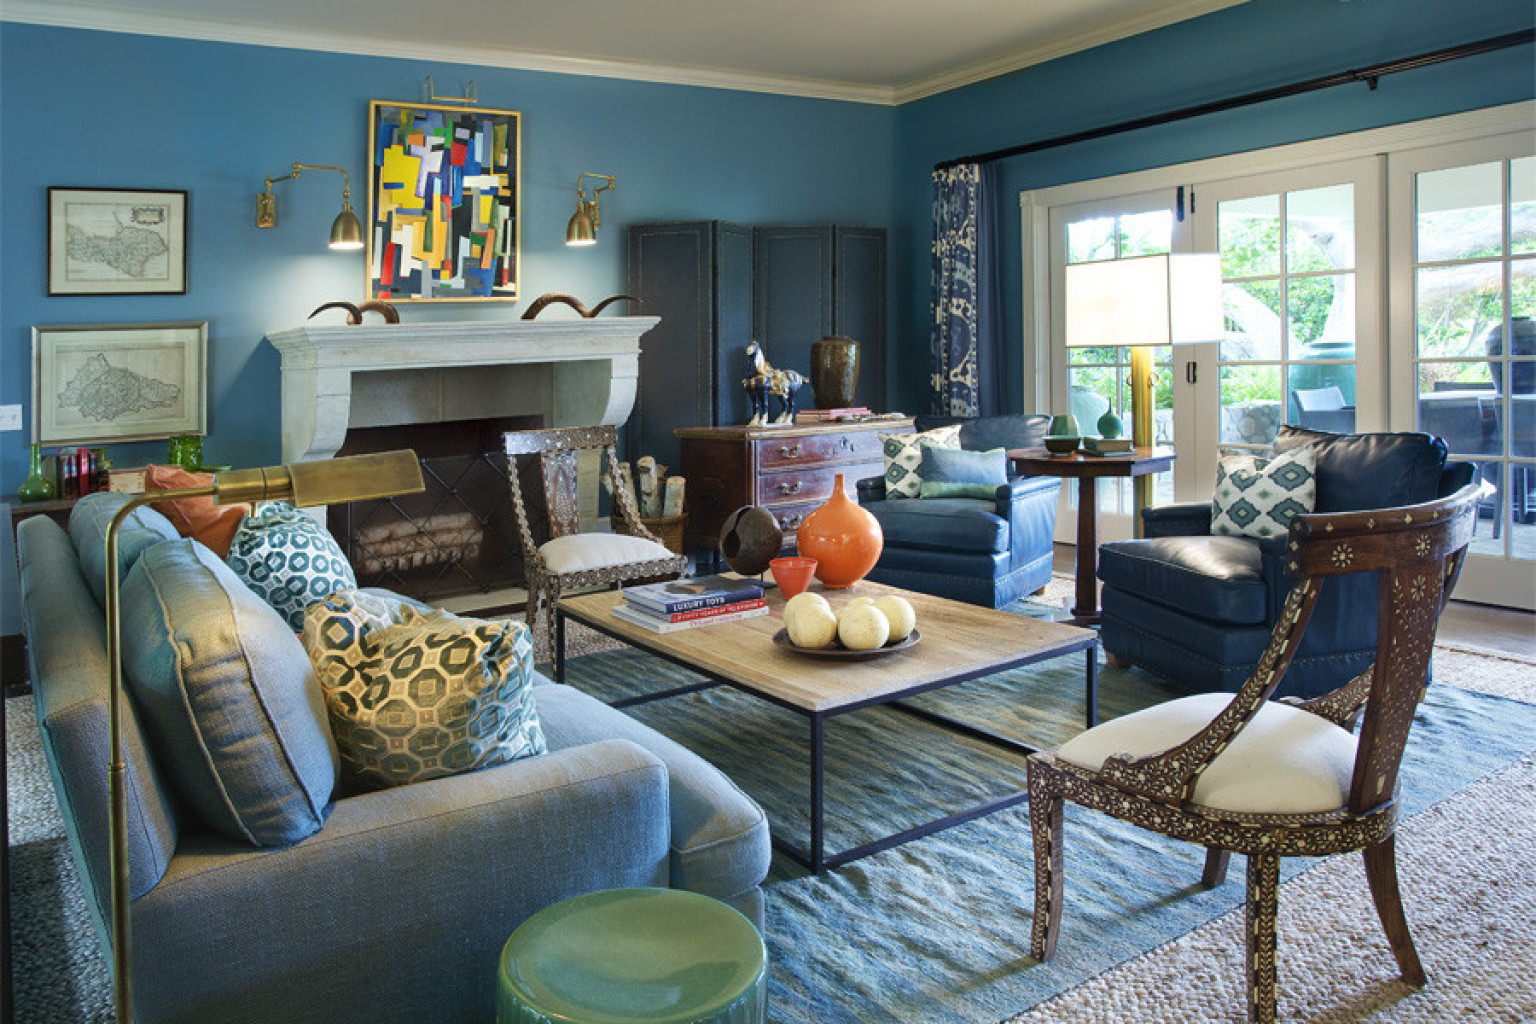 Designer Showhouse Take A Tour Of The Santa Barbara Design House And Gardens Photos Huffpost